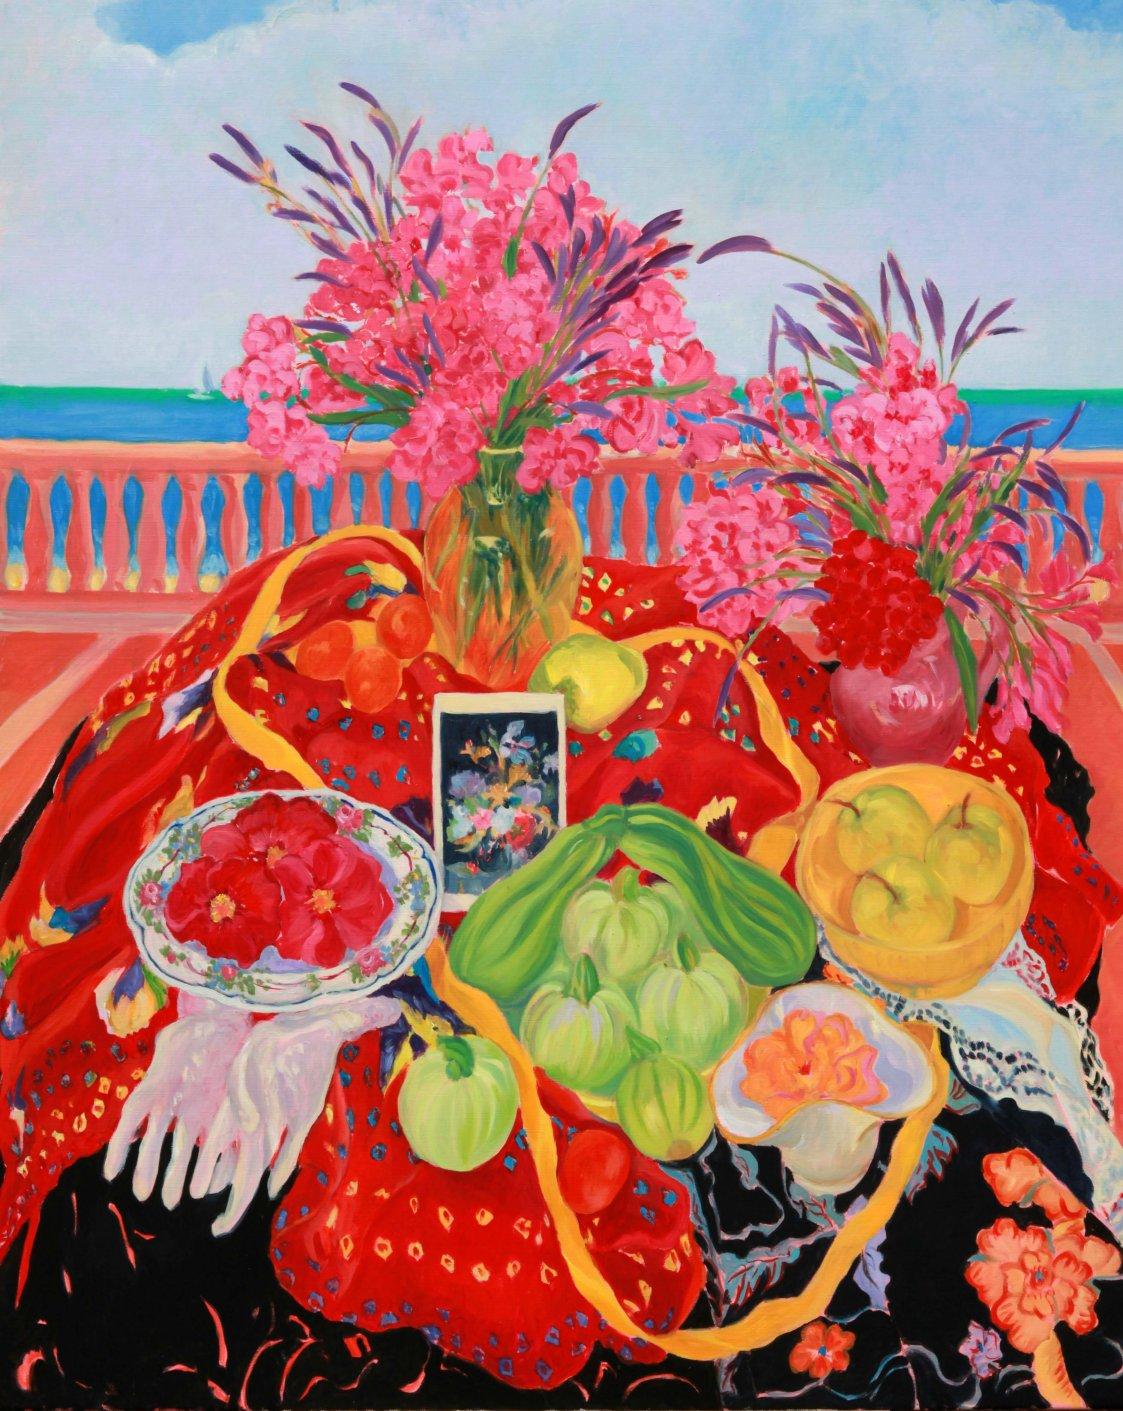 Zucchini and Sea - Sandra Caplan